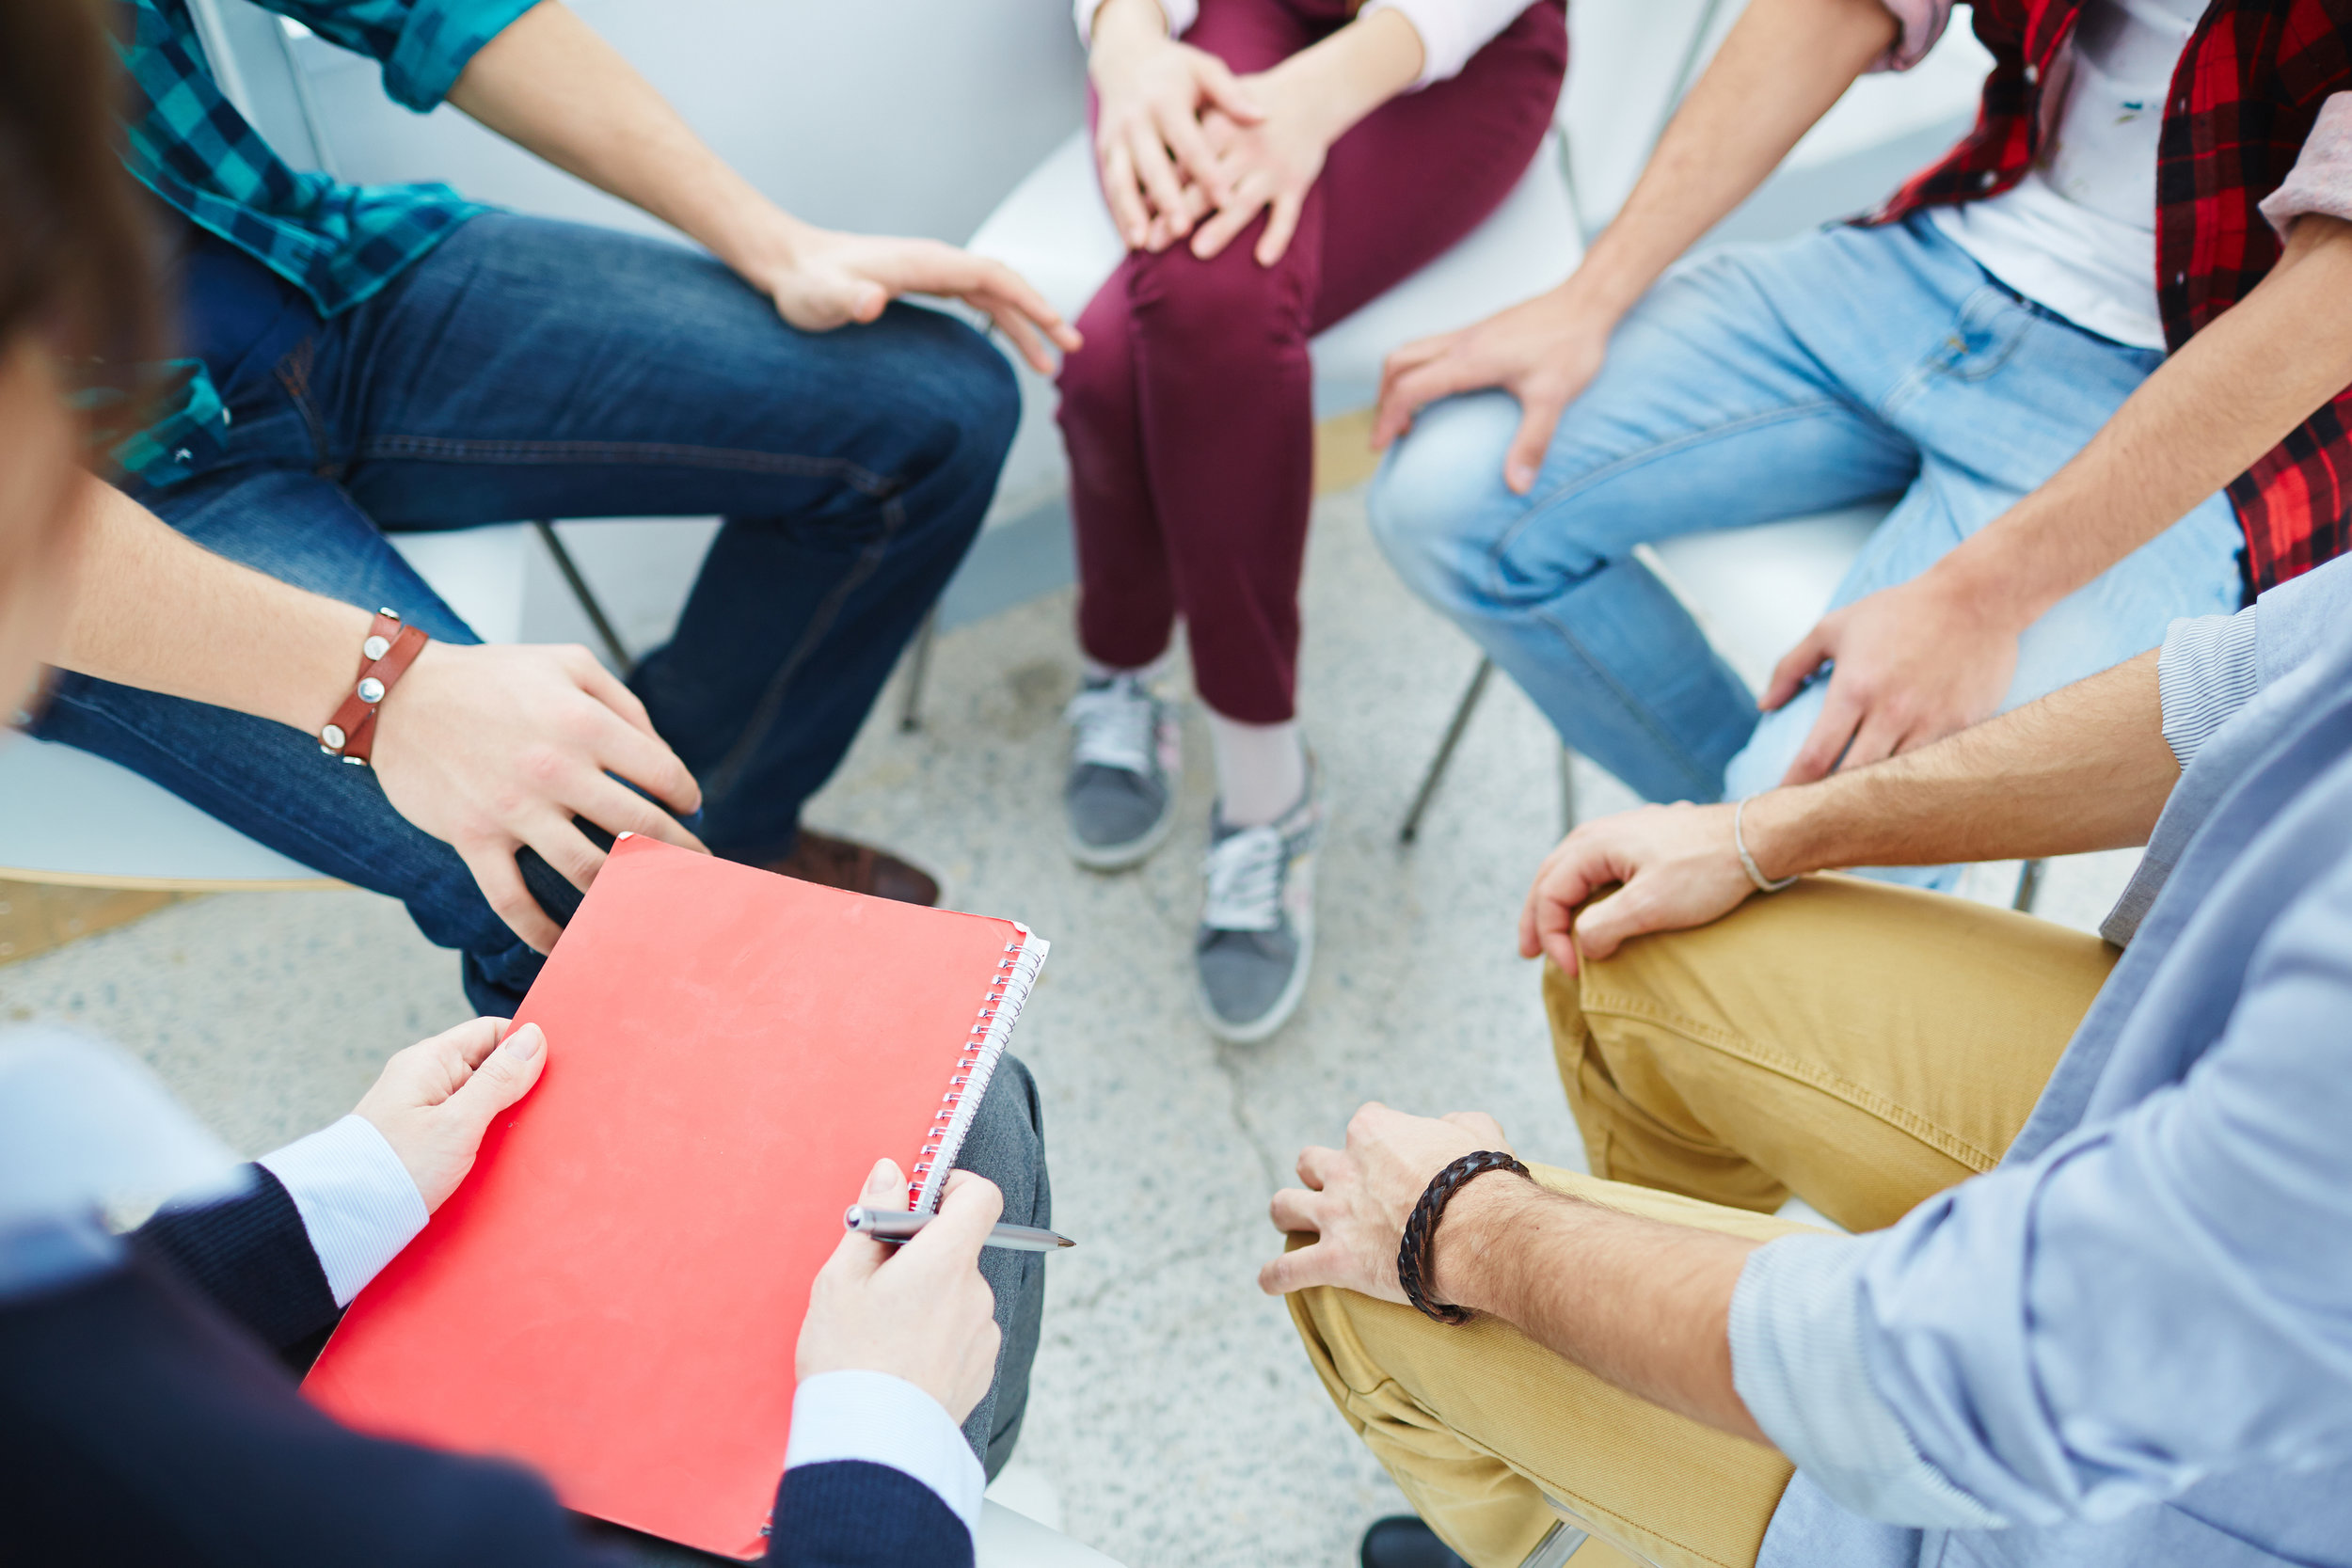 Group Counseling_392125735.jpg